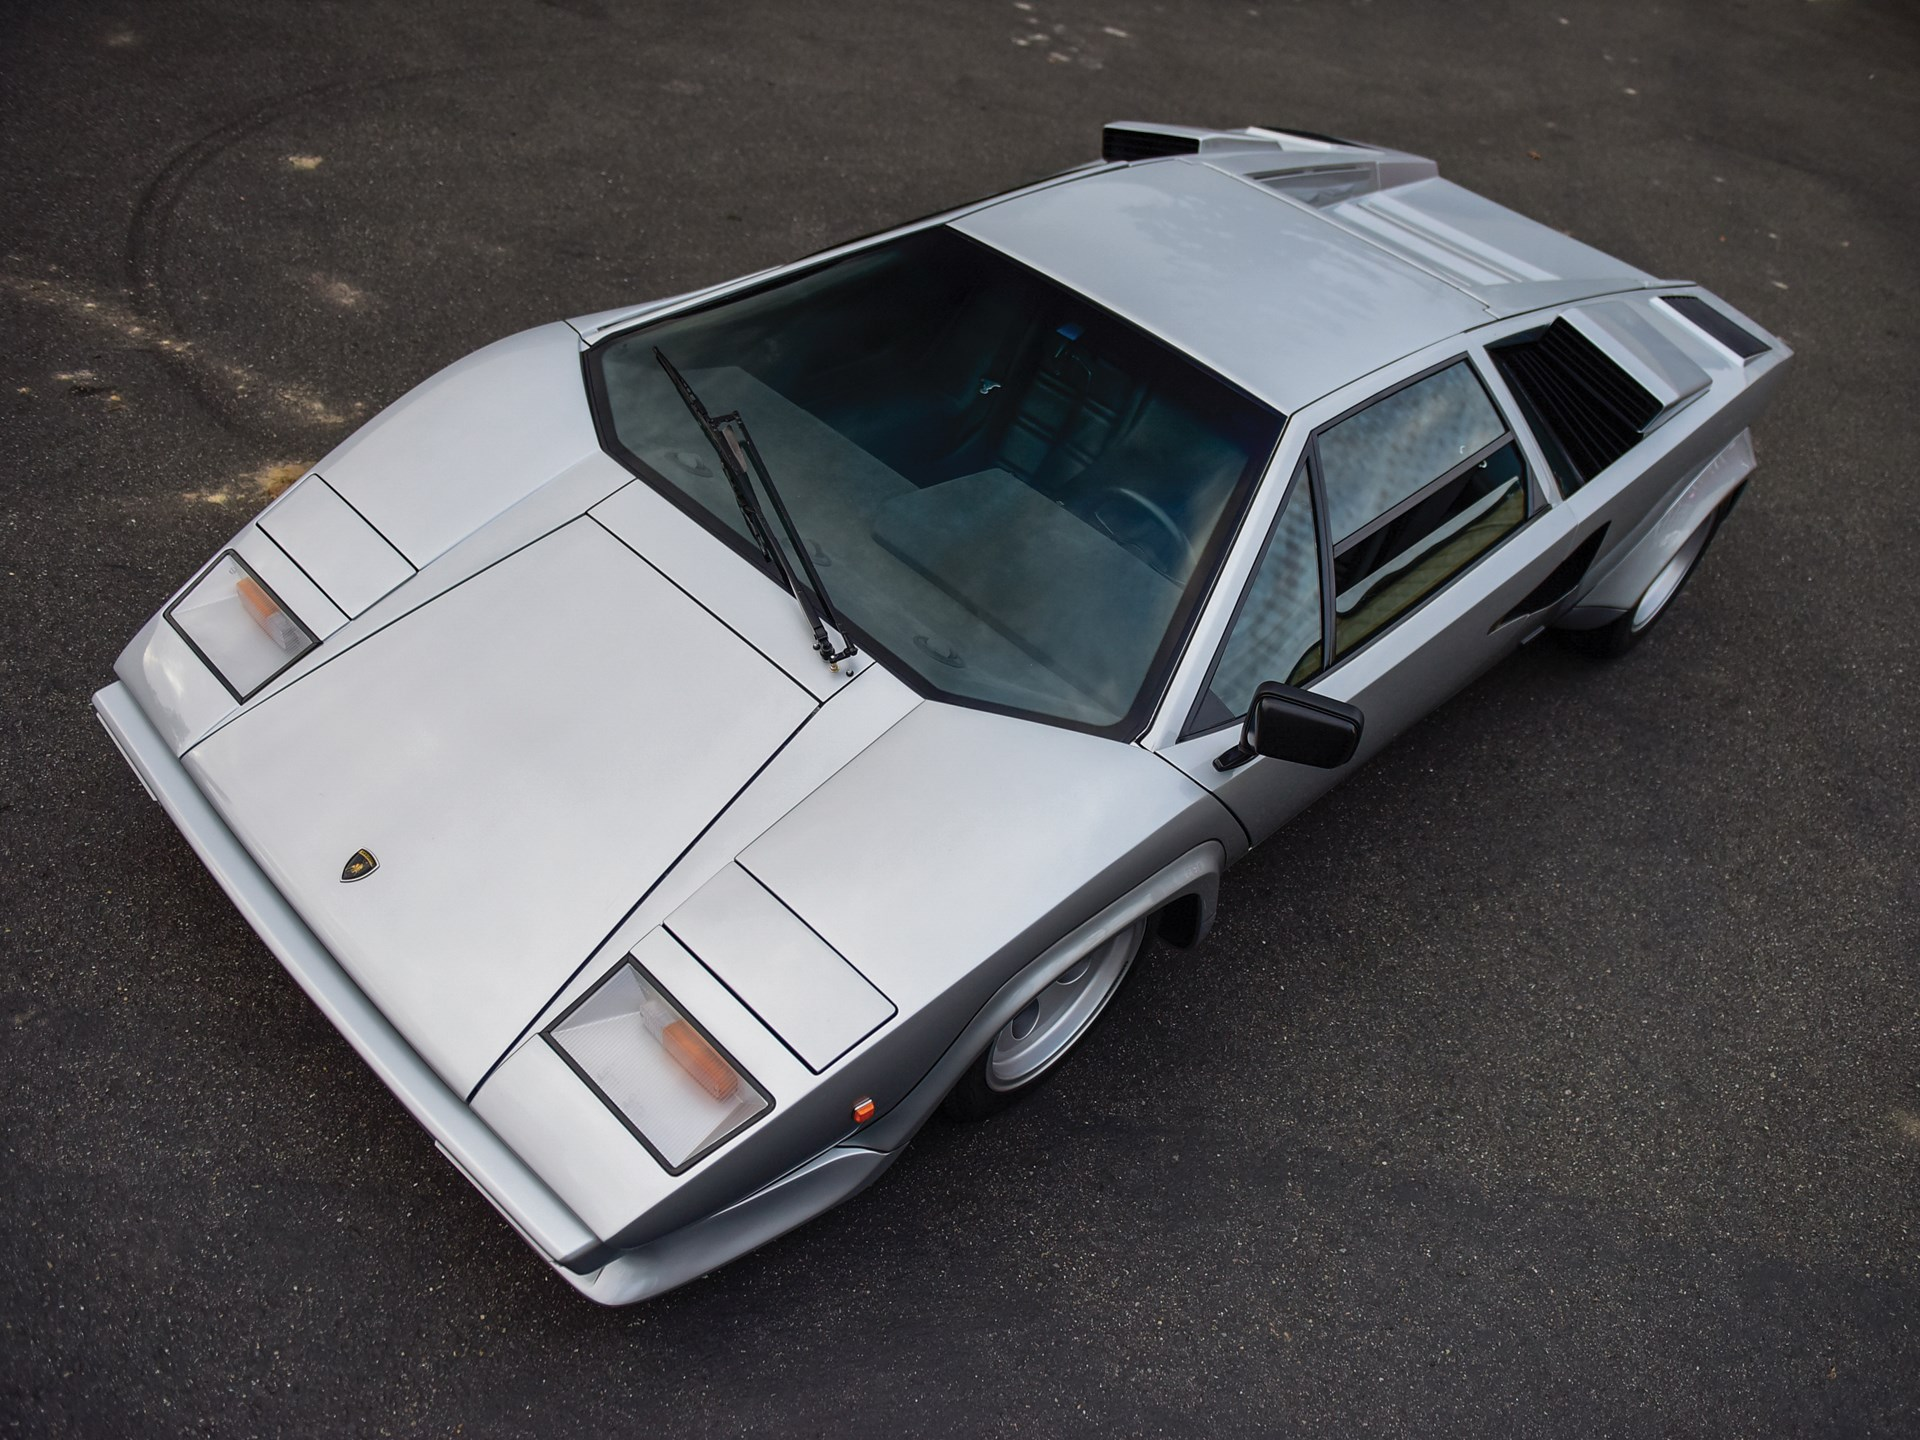 1981 Lamborghini Countach LP400 S Series II by Bertone